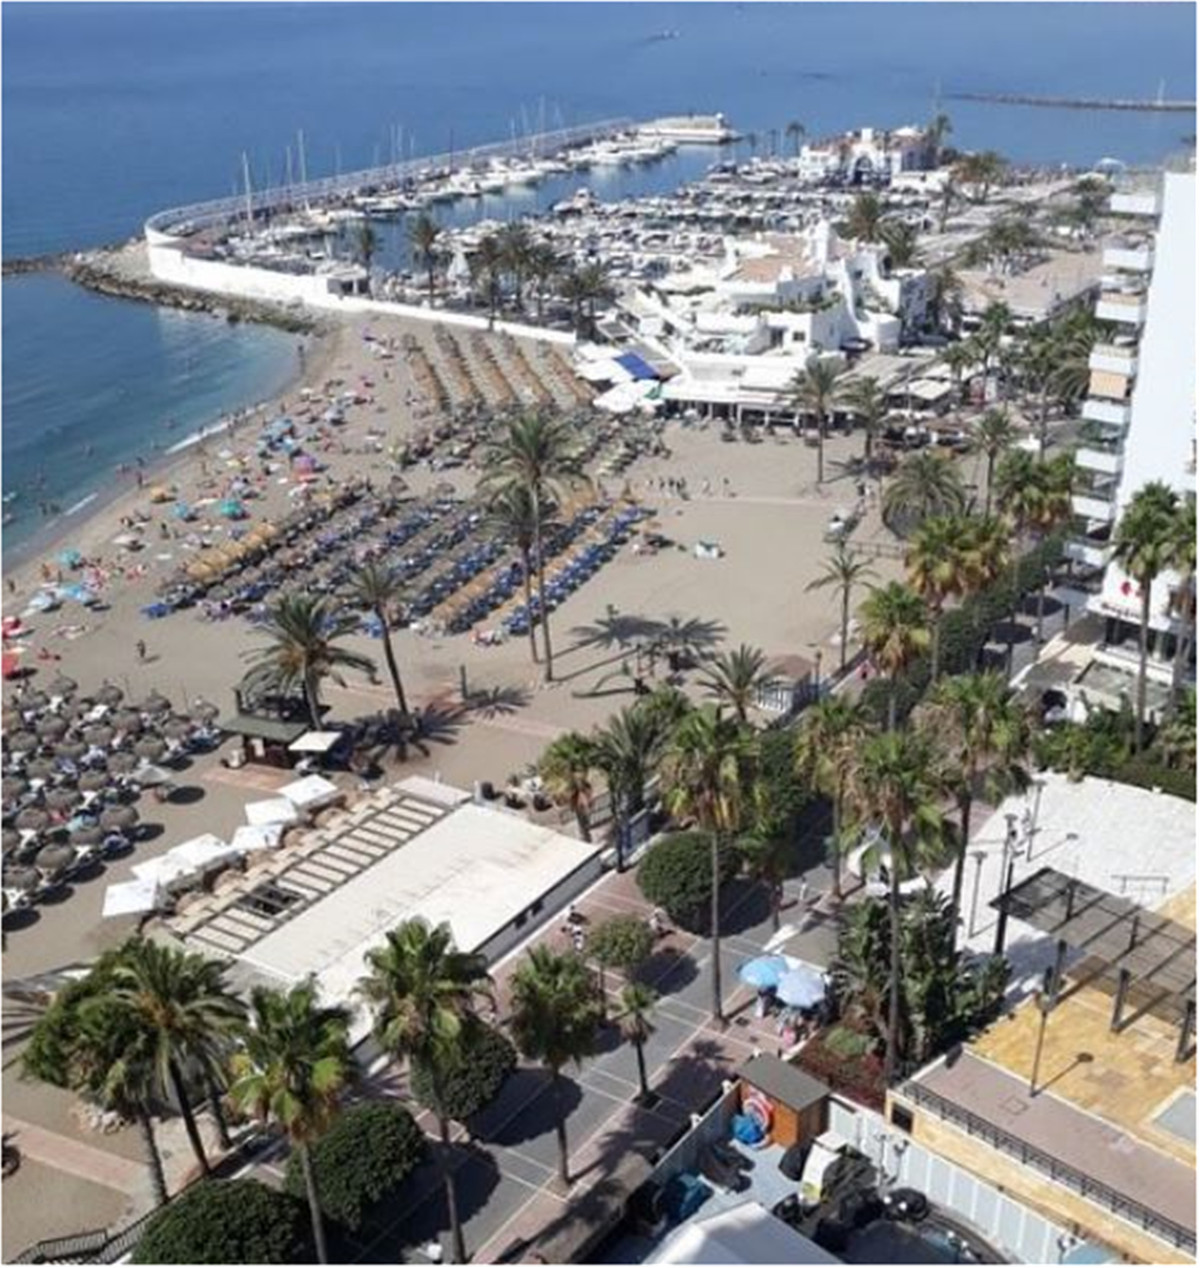 OPPORTUNITY FOR INVESTORS  RESTAURANT FOR SALE, MARBELLA CENTRE, ON THE BEACH, 140 SEATS, 900.000 EU, Spain